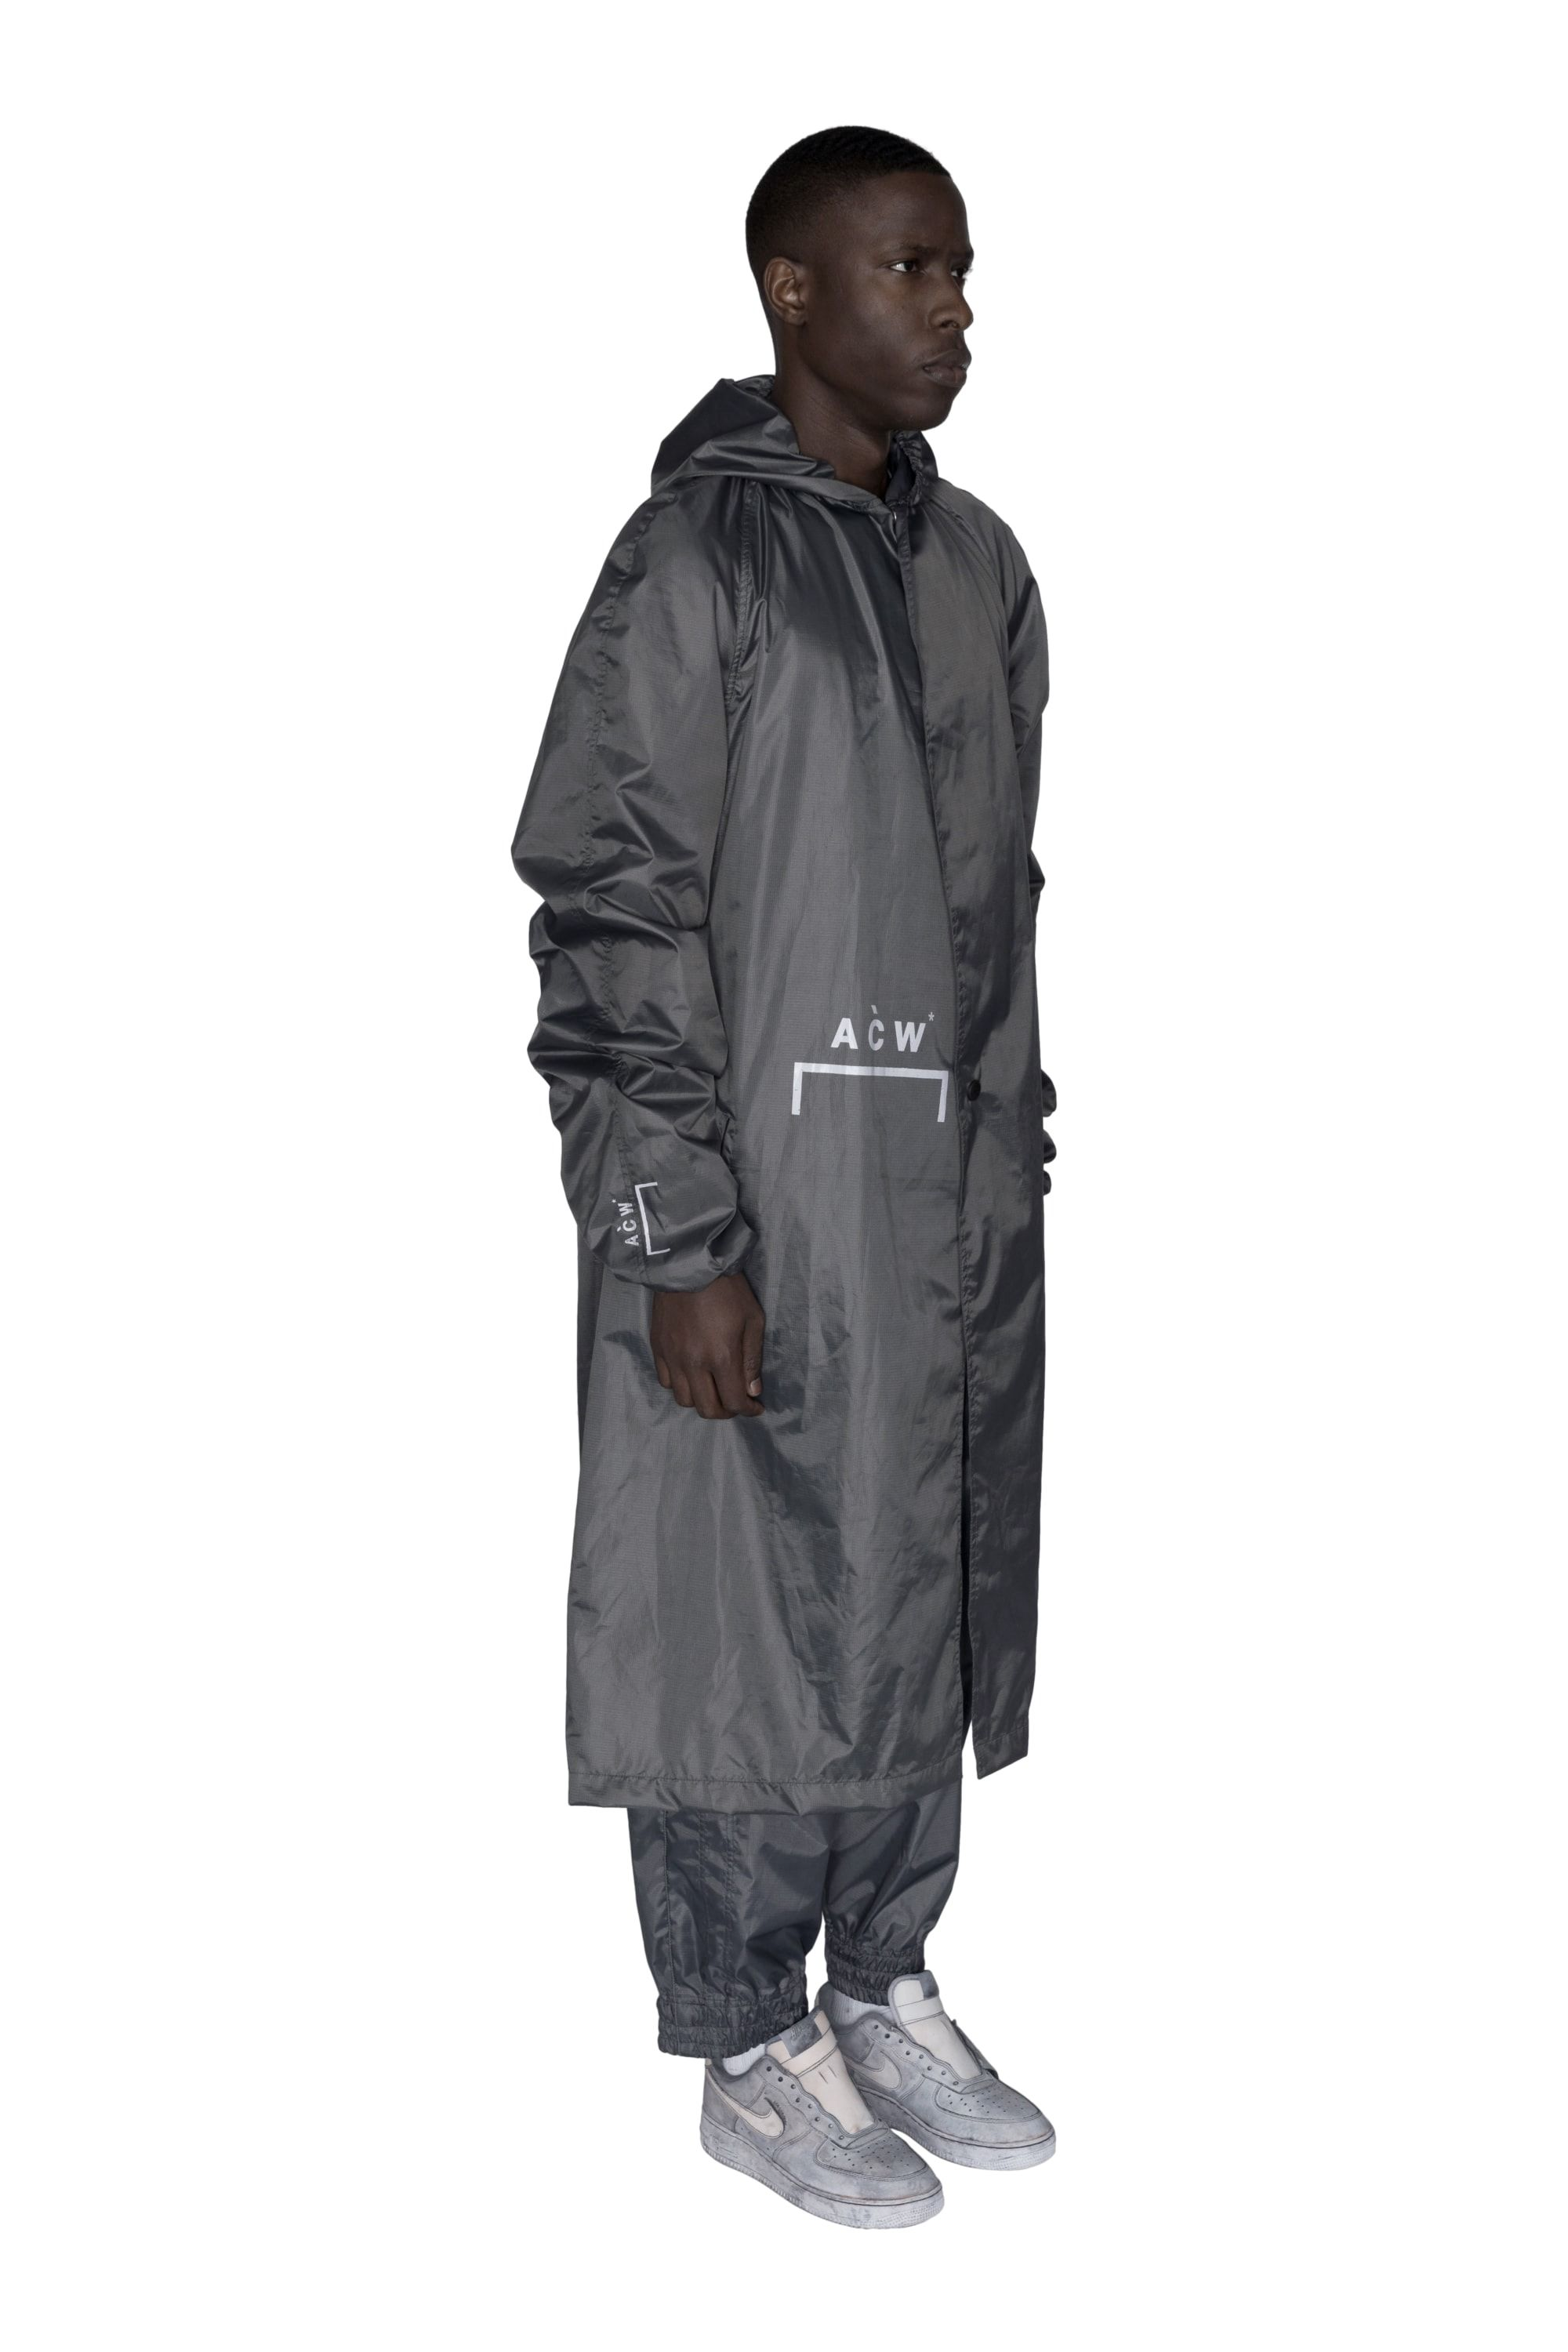 3024db79 ACW* HEAVYWEIGHT STORM COAT - SLATE | design | Coat, A cold wall ...